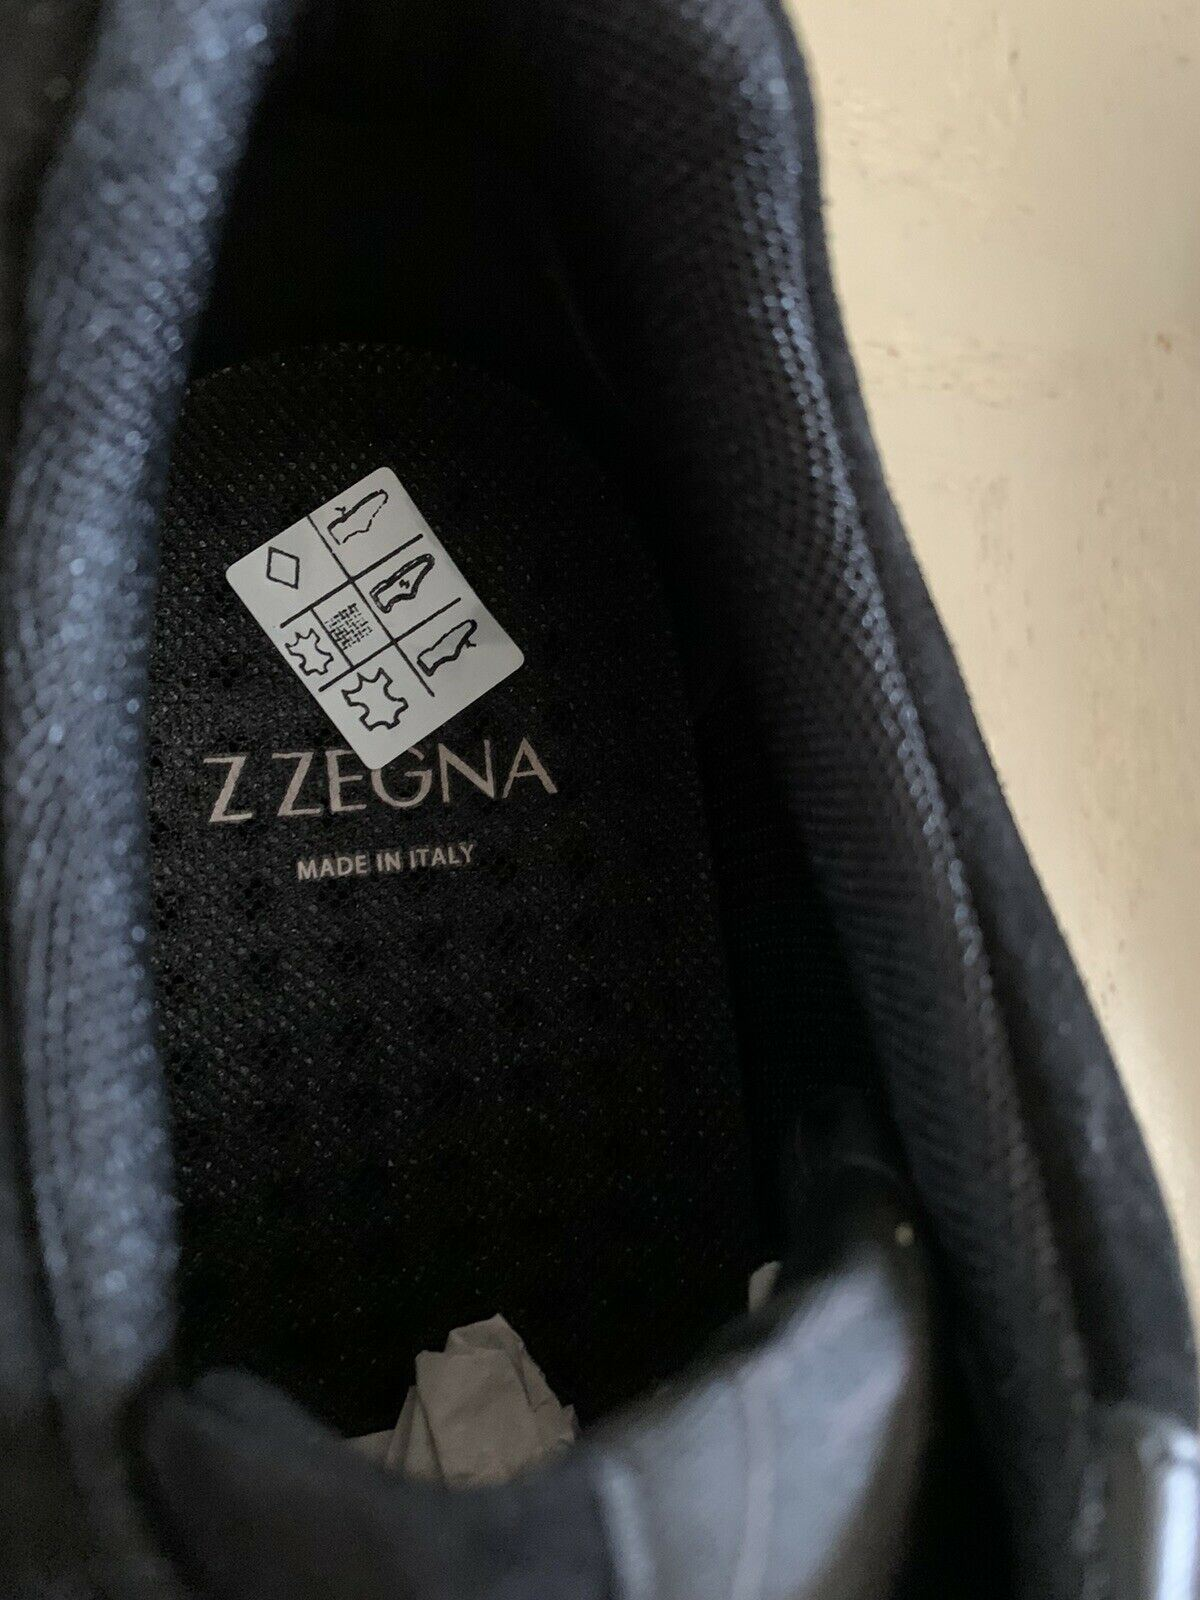 NIB $595 Z Zegna Men's Leather/Suede Sneakers Black 9.5 US Italy